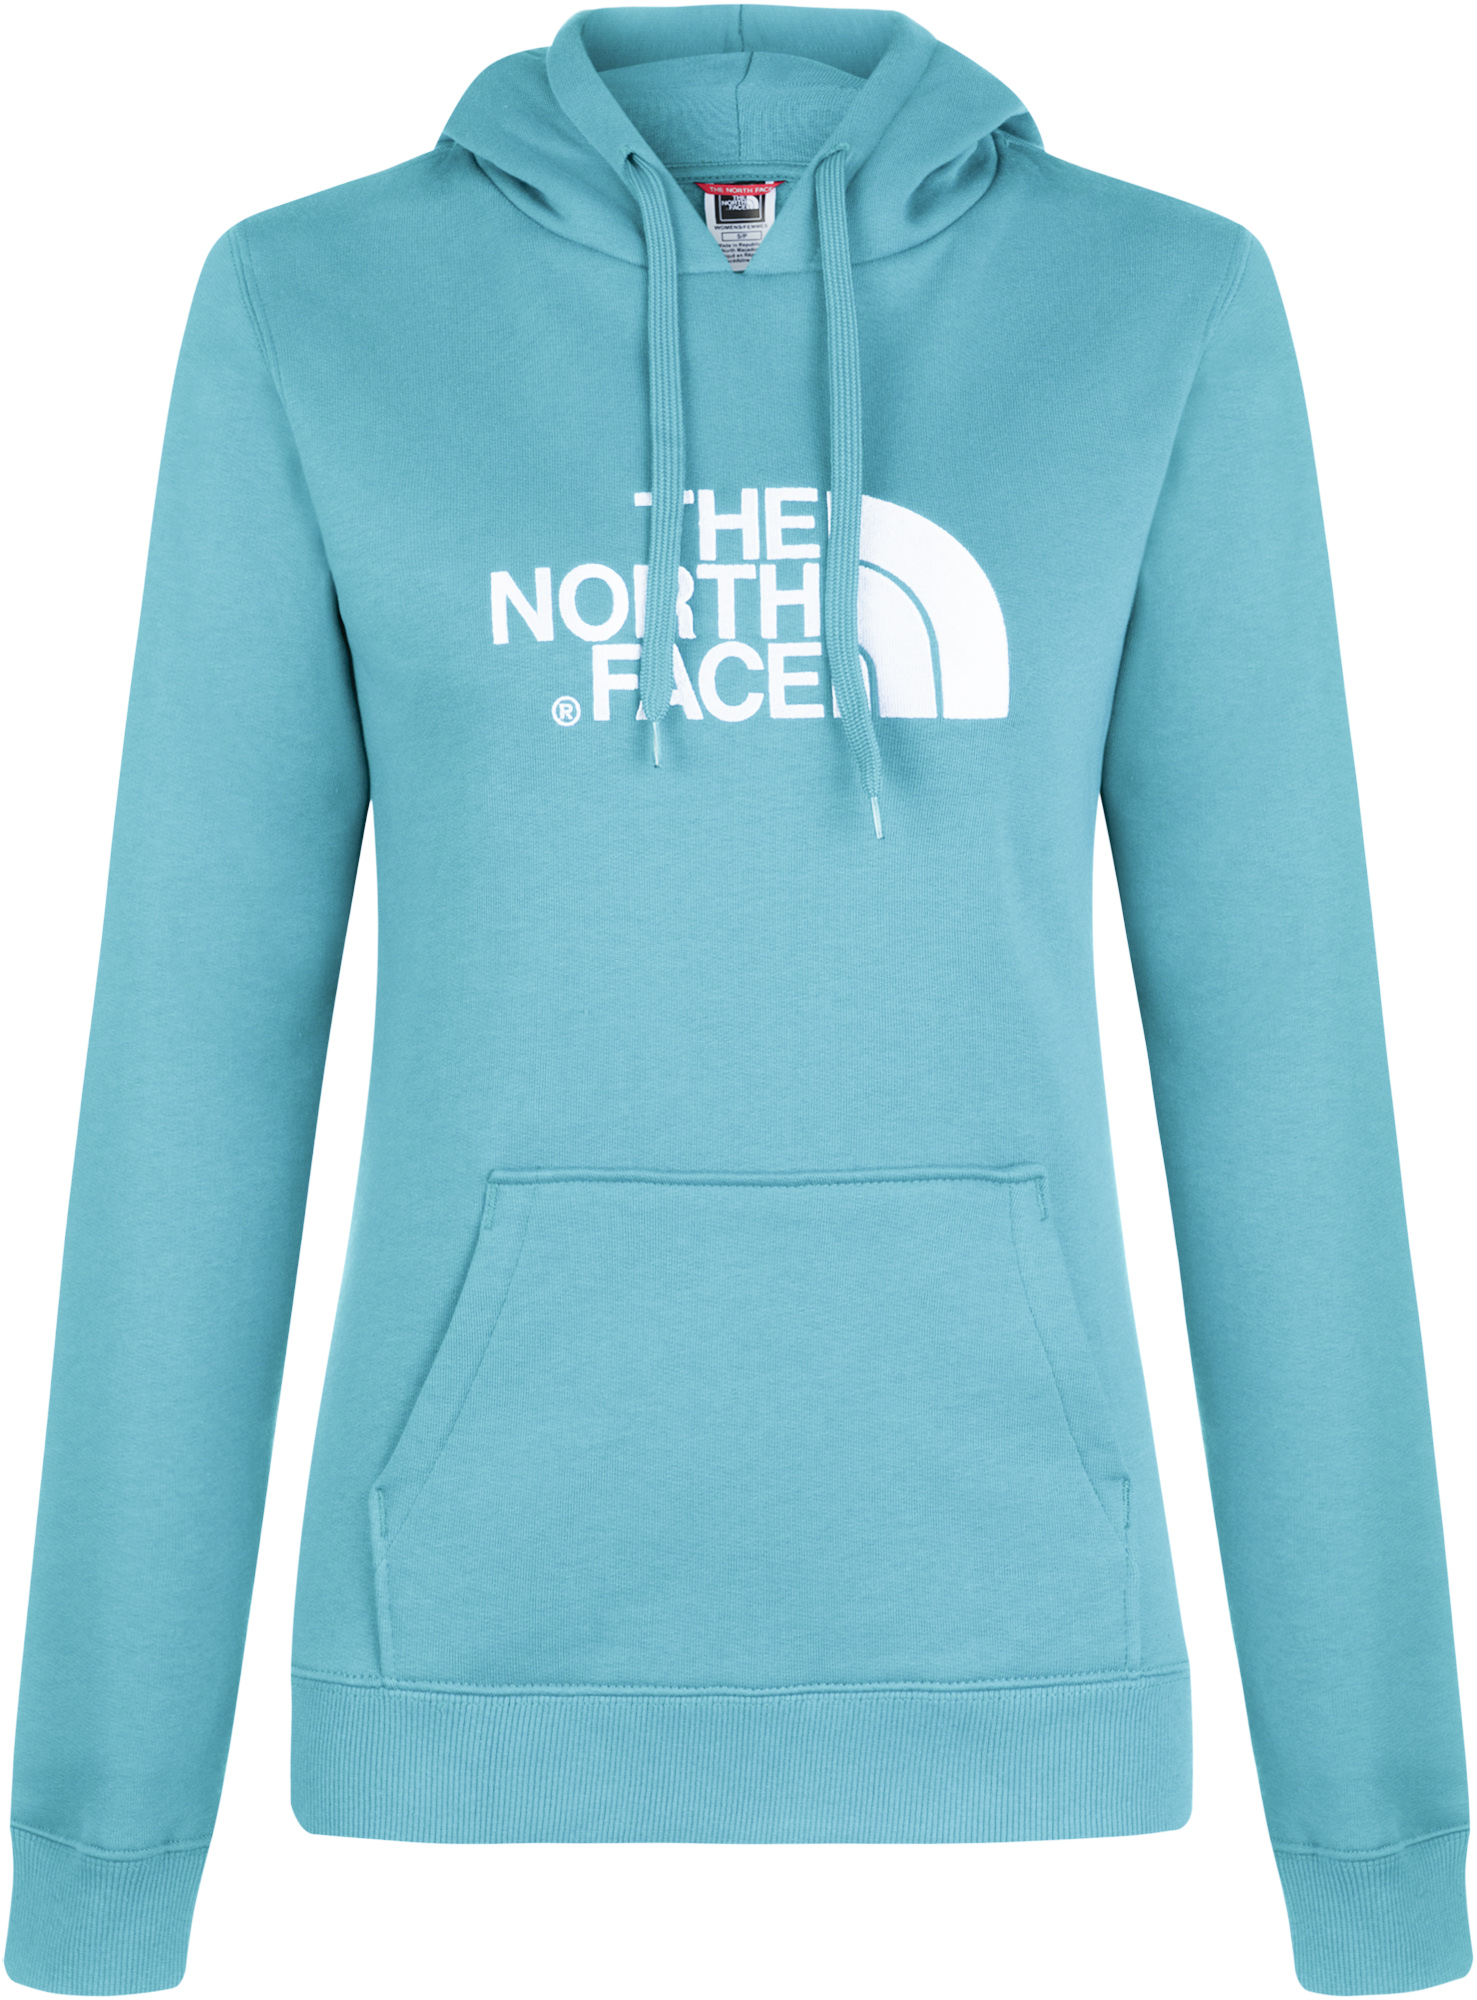 The North Face Худи женская The North Face Drew Peak, размер 46-48 nancy drew 10